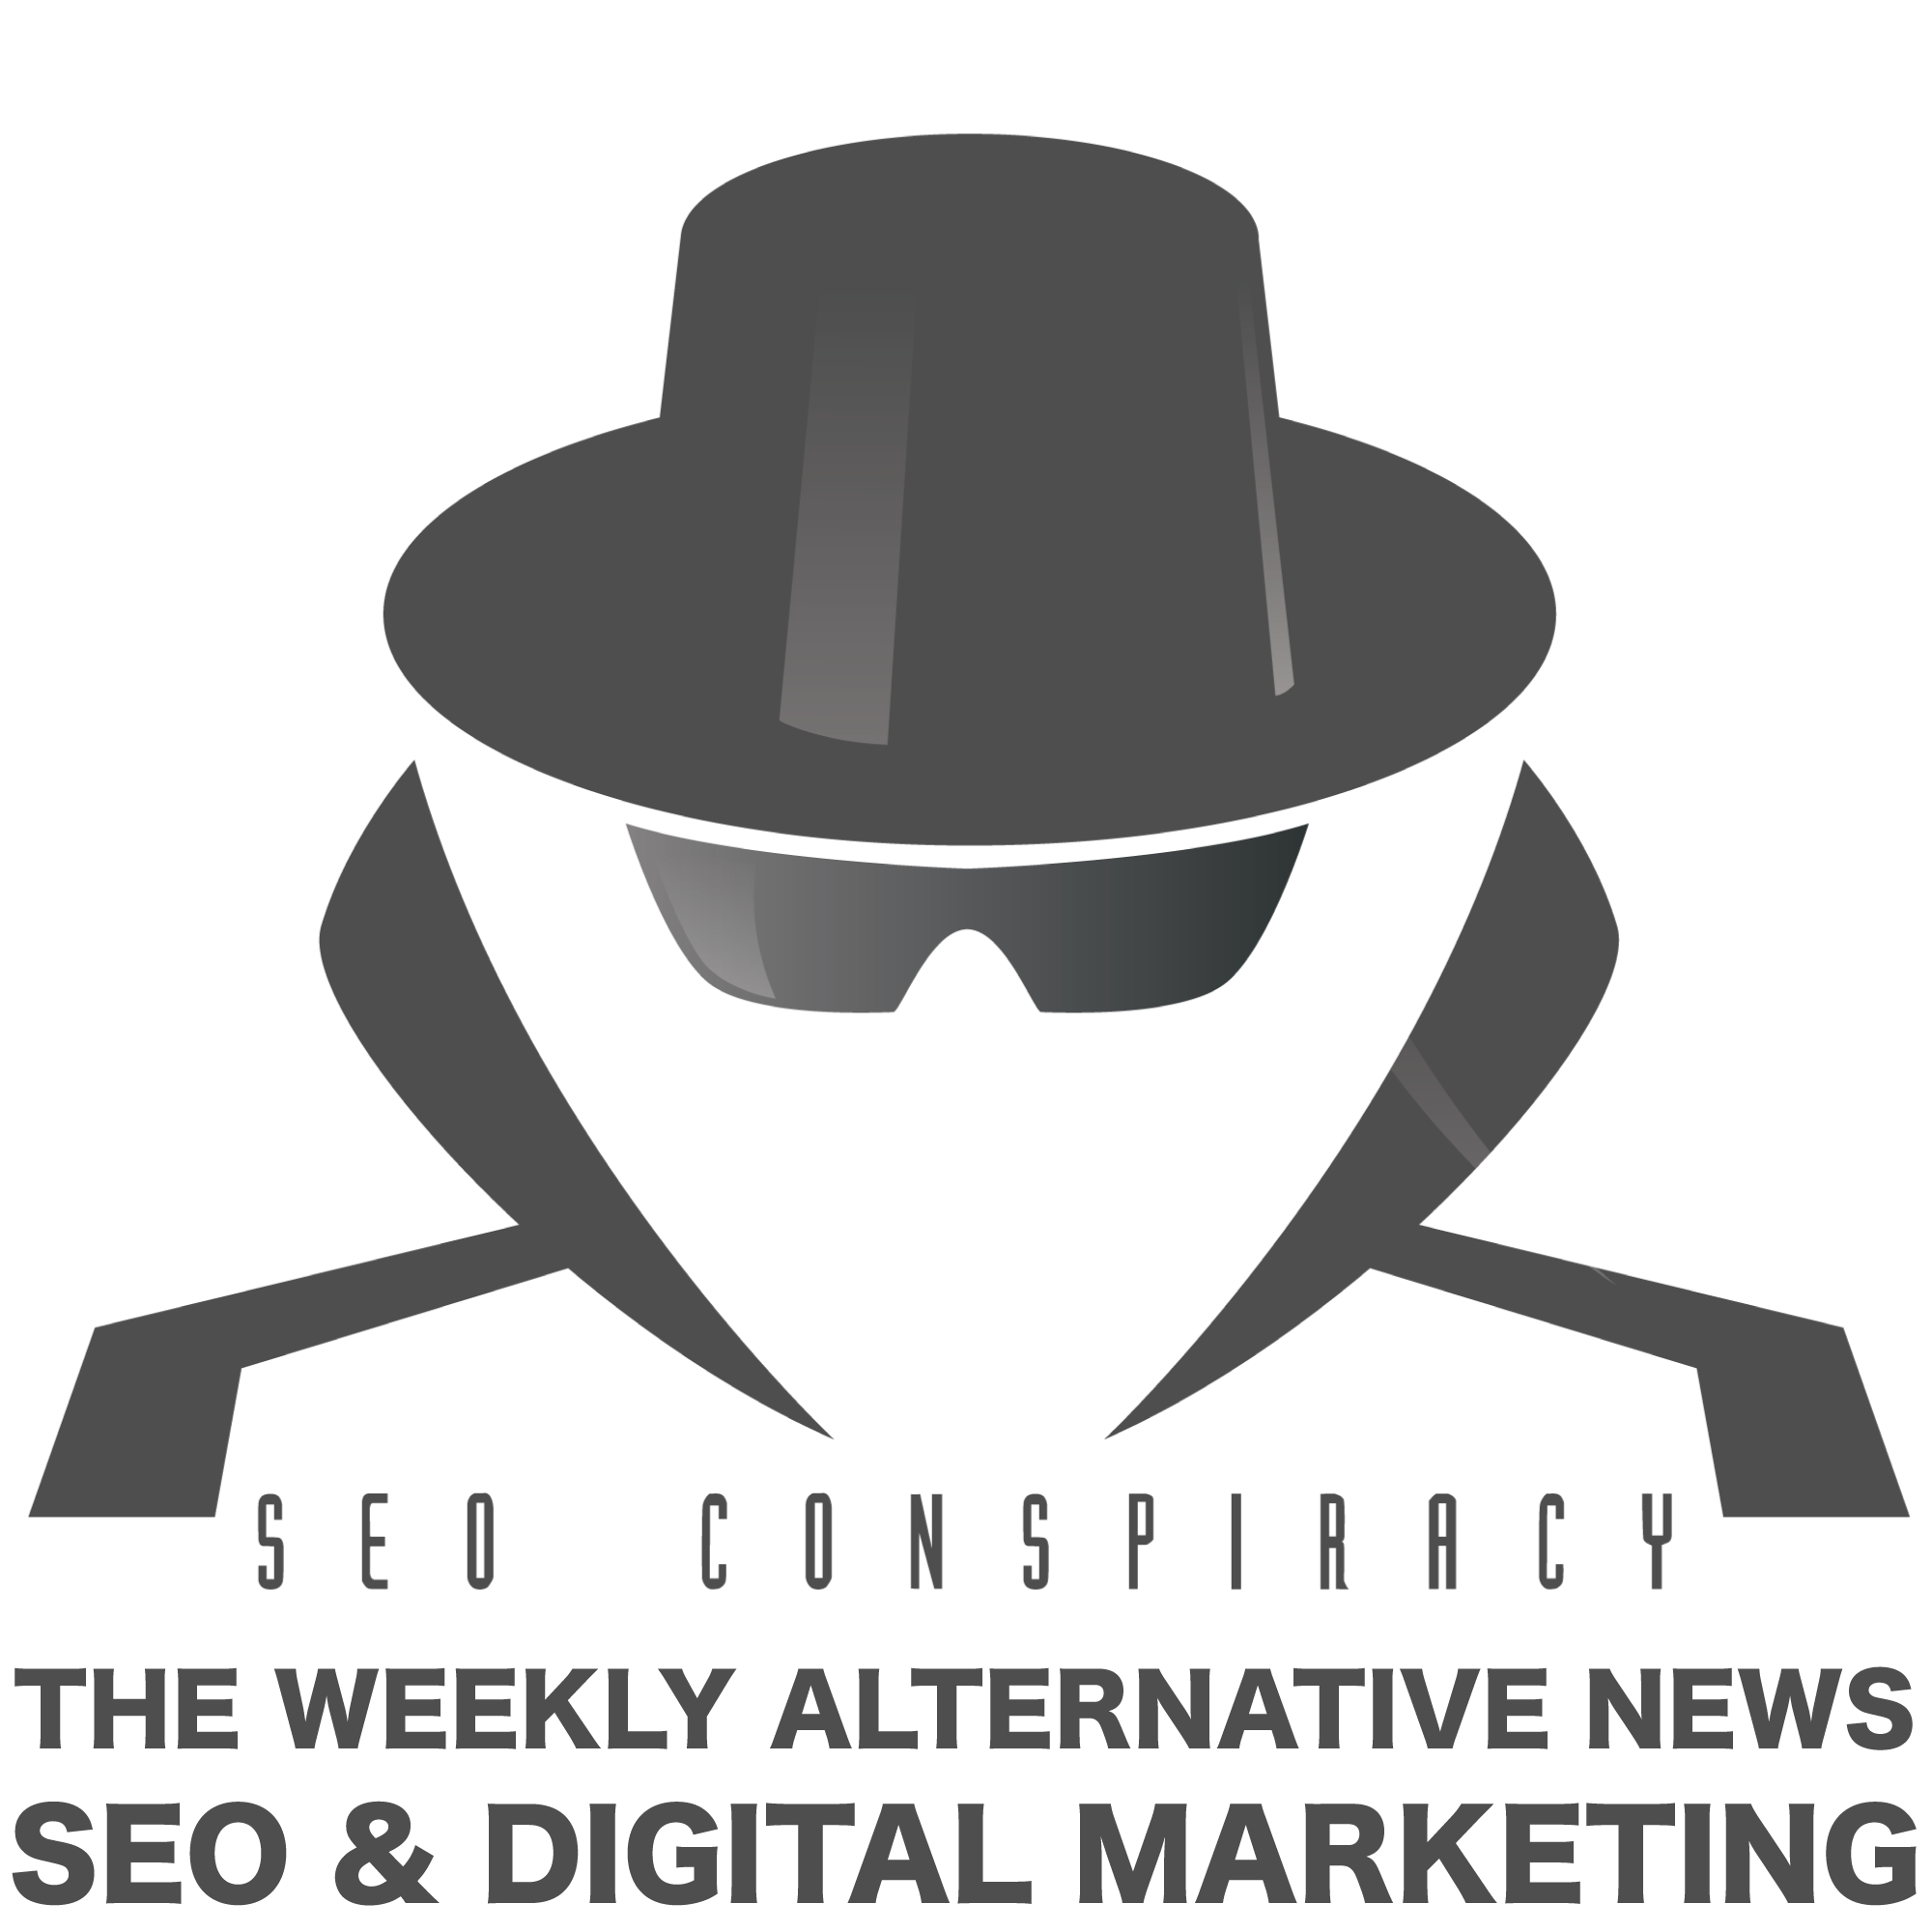 What is the N°1 Advanced SEO Strategy in 2020? Google is Broken (again) & more in SEOConspiracy